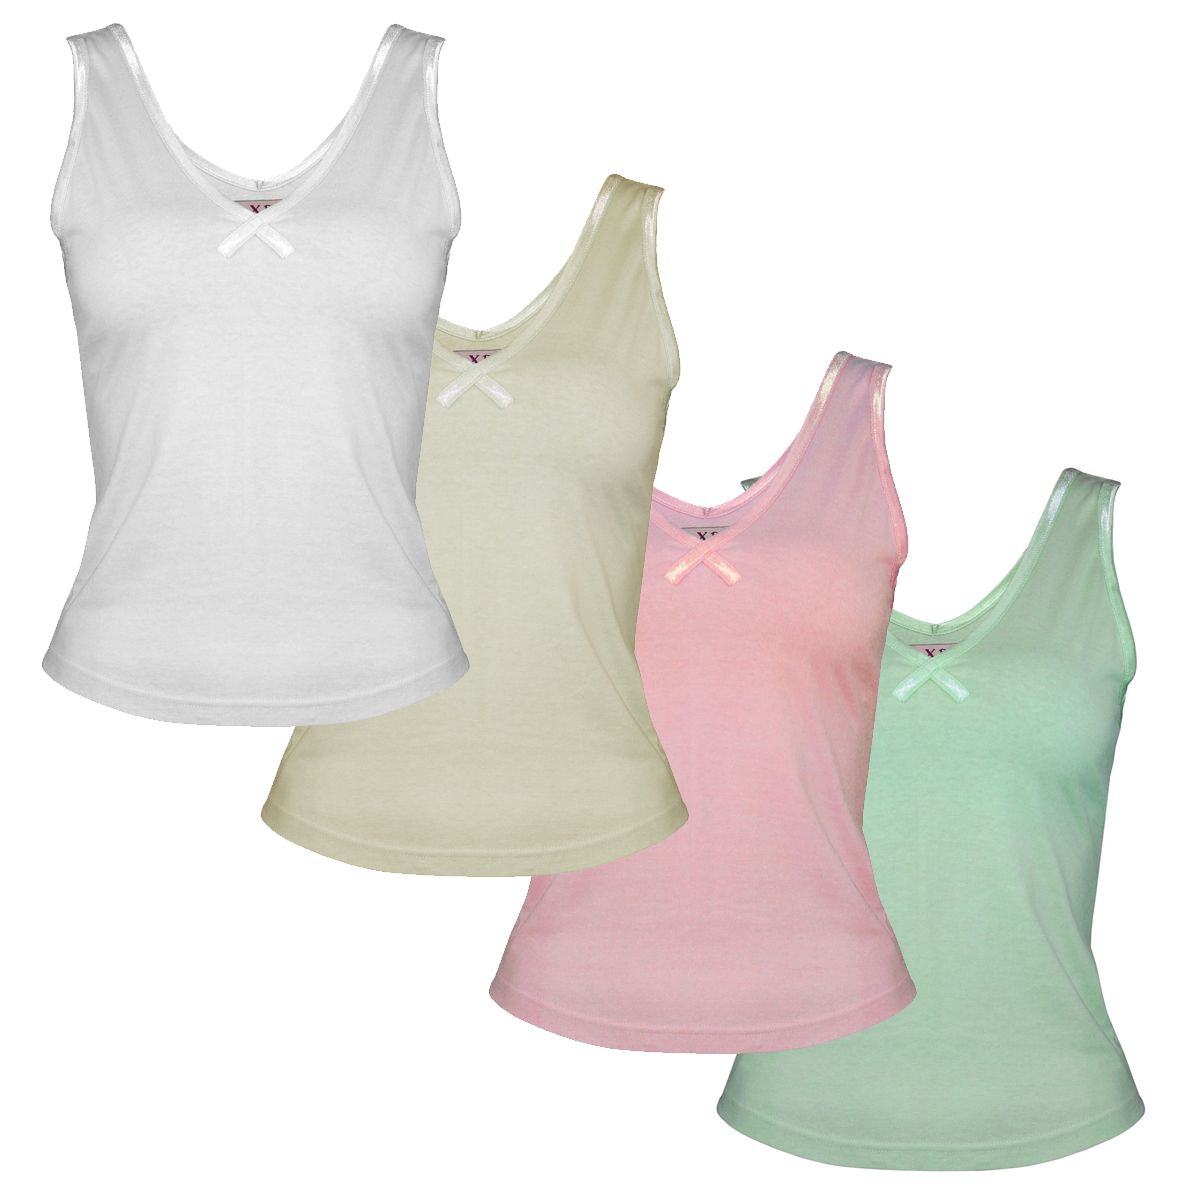 654e0f4ebb Womens Ladies Cotton Plain Vest Cropped Short Sleeveless Tank Top V-Neck  Satin